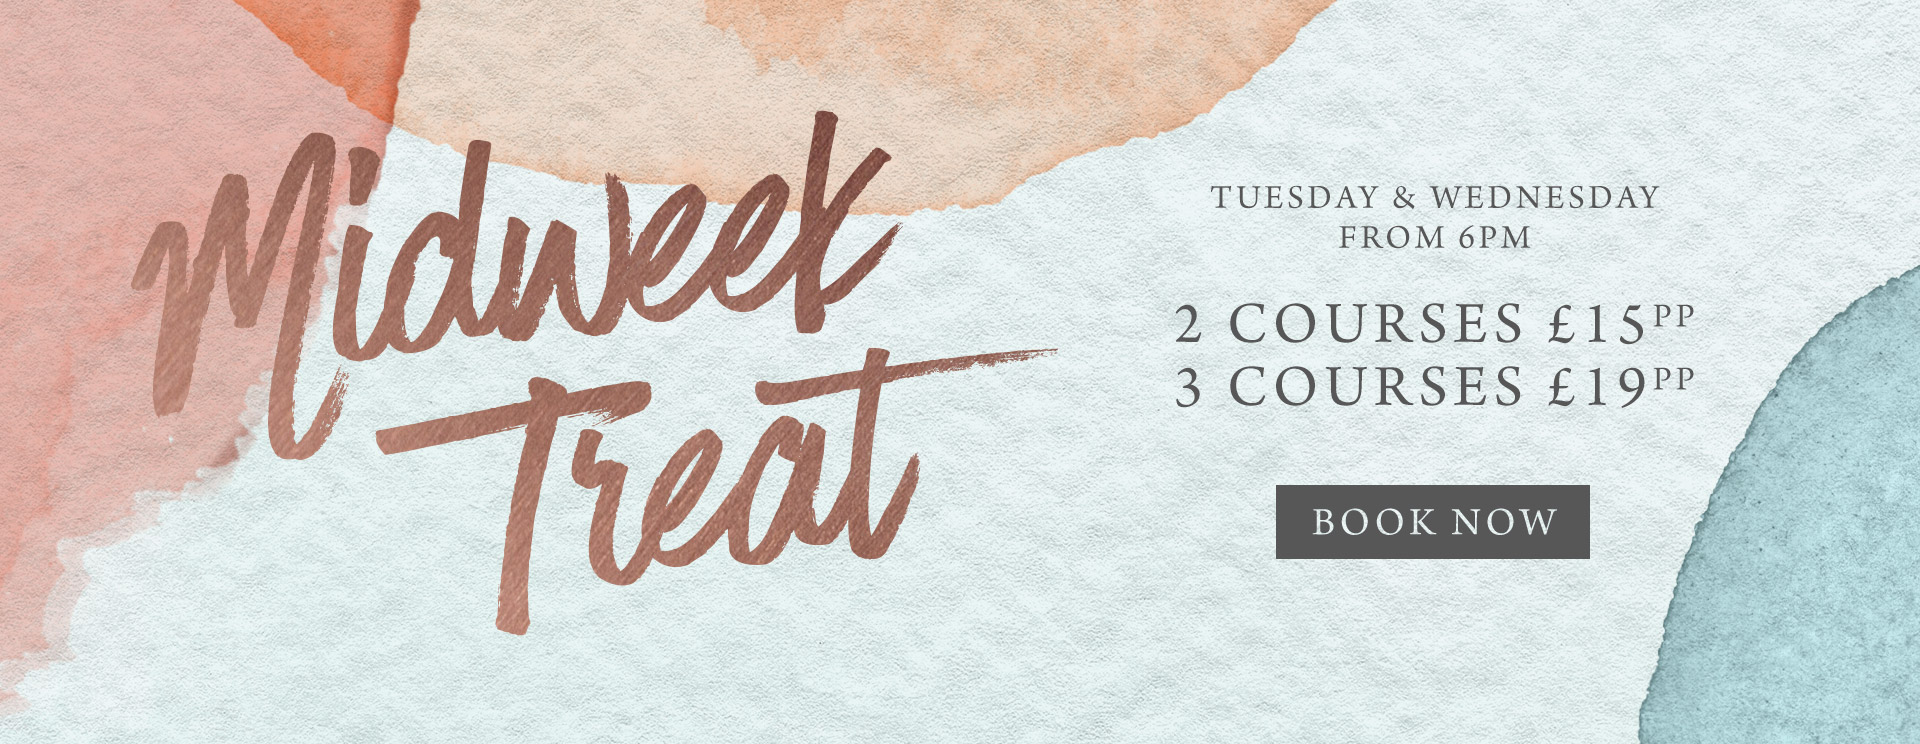 Midweek treat at The Mossbrook Inn - Book now